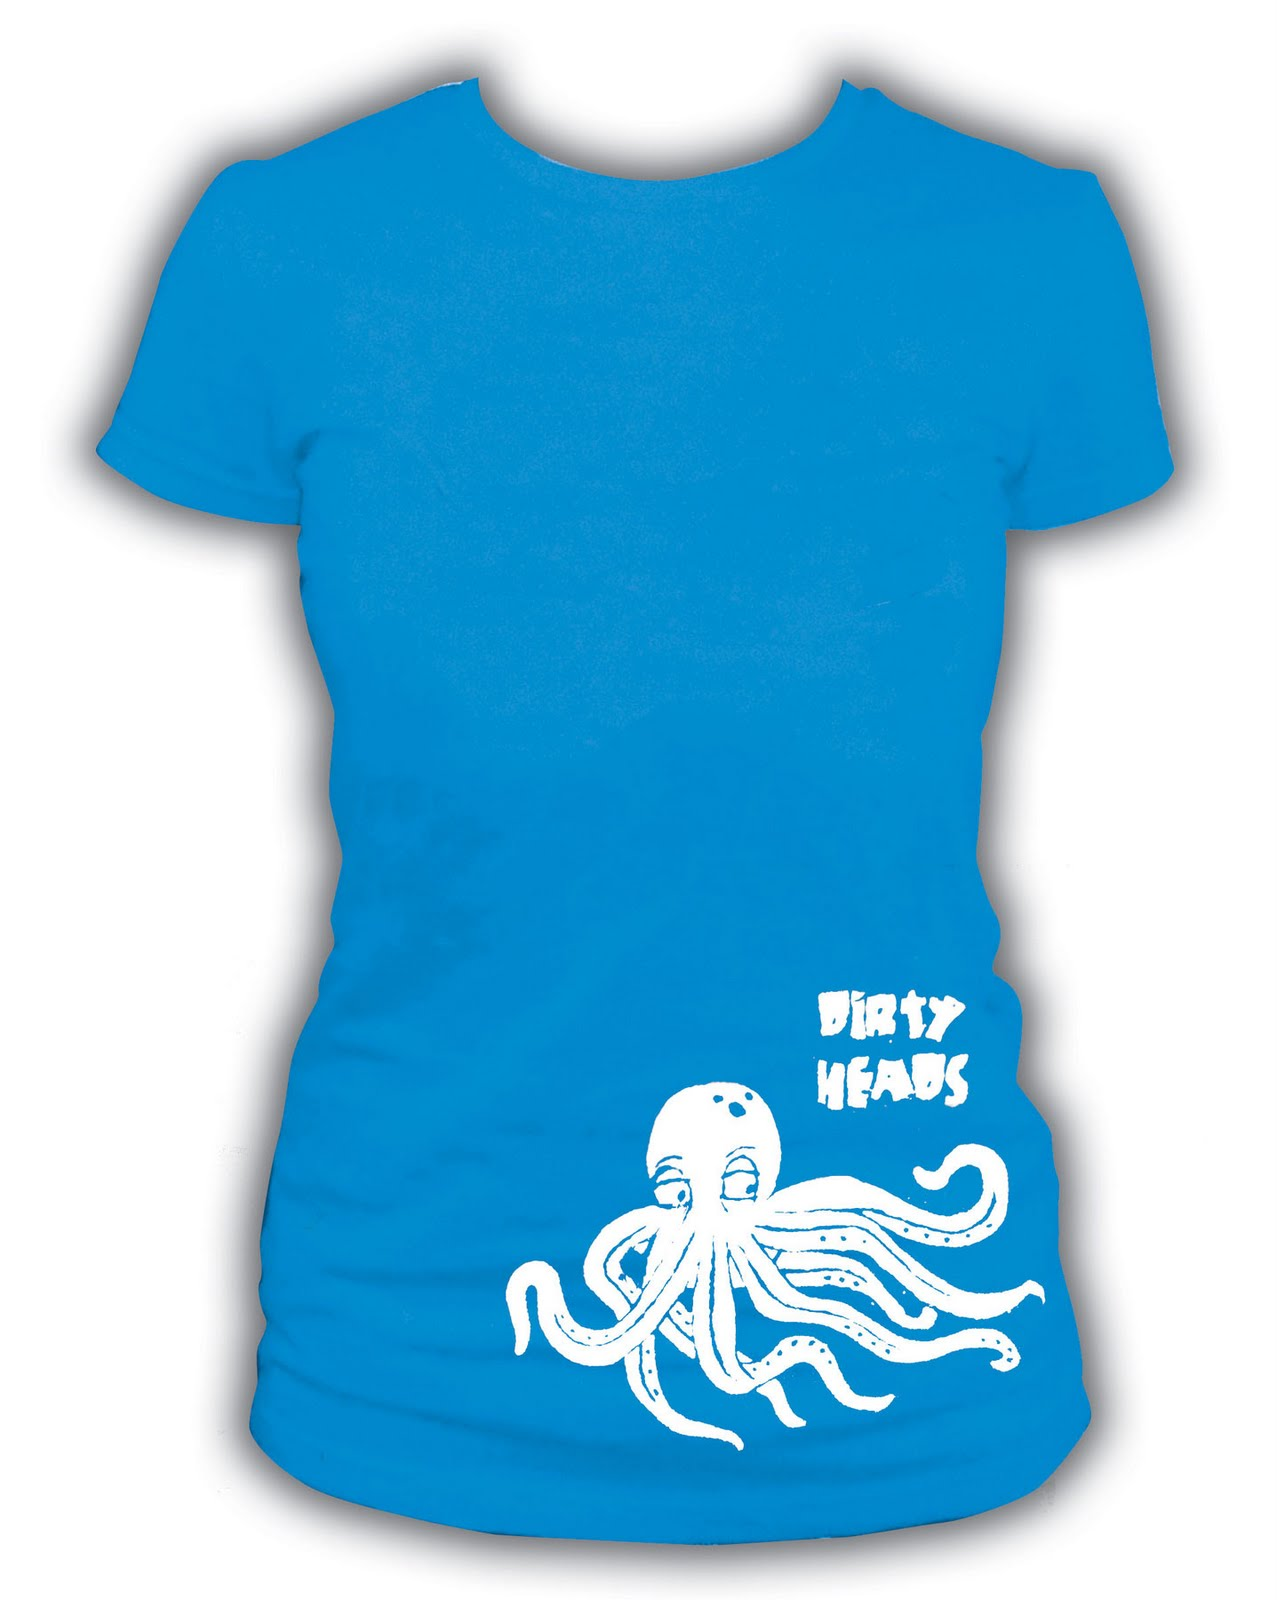 Shirt design octopus -  Huge Obsession I Have Is The Need To Incessantly Reference Obscure Kids Movies From The 90s But What Better Subject Matter For A T Shirt Design